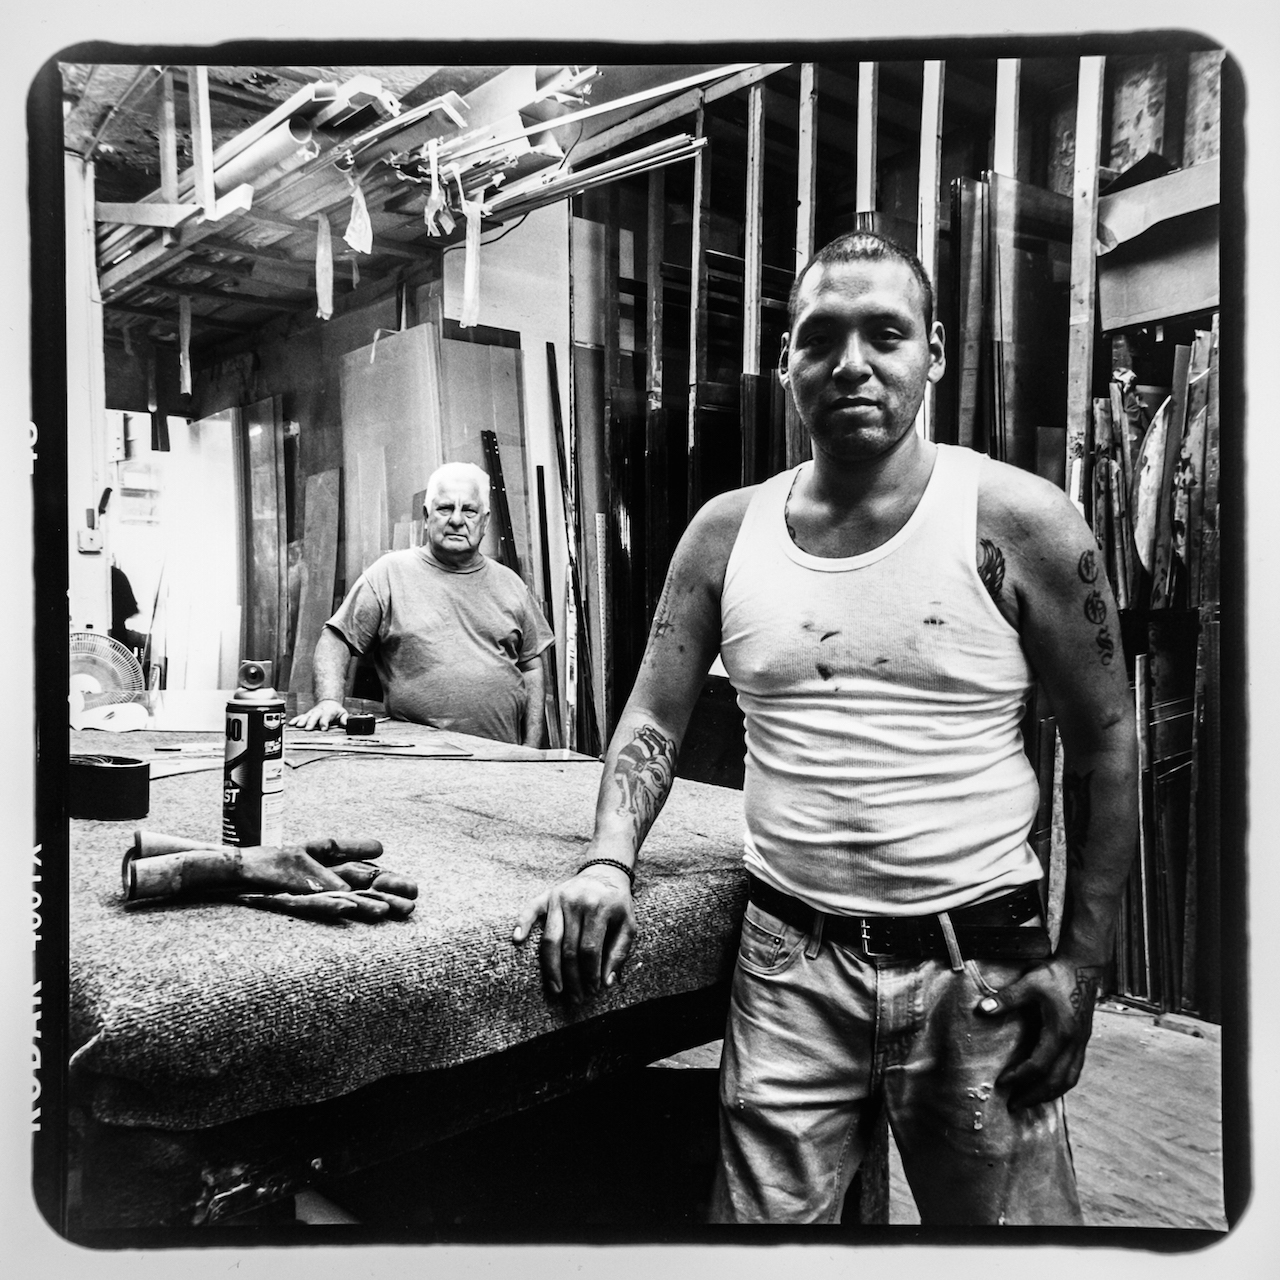 Kevin Mendoza (front) and Pepe (no last name) from Fordham Glass & Windows located on Jerome Avenue and 183rd. Kevin is retiring soon and Pepe will take over the business. Photo taken August 2015 by Jonathan Santiago/Bronx Photo League.